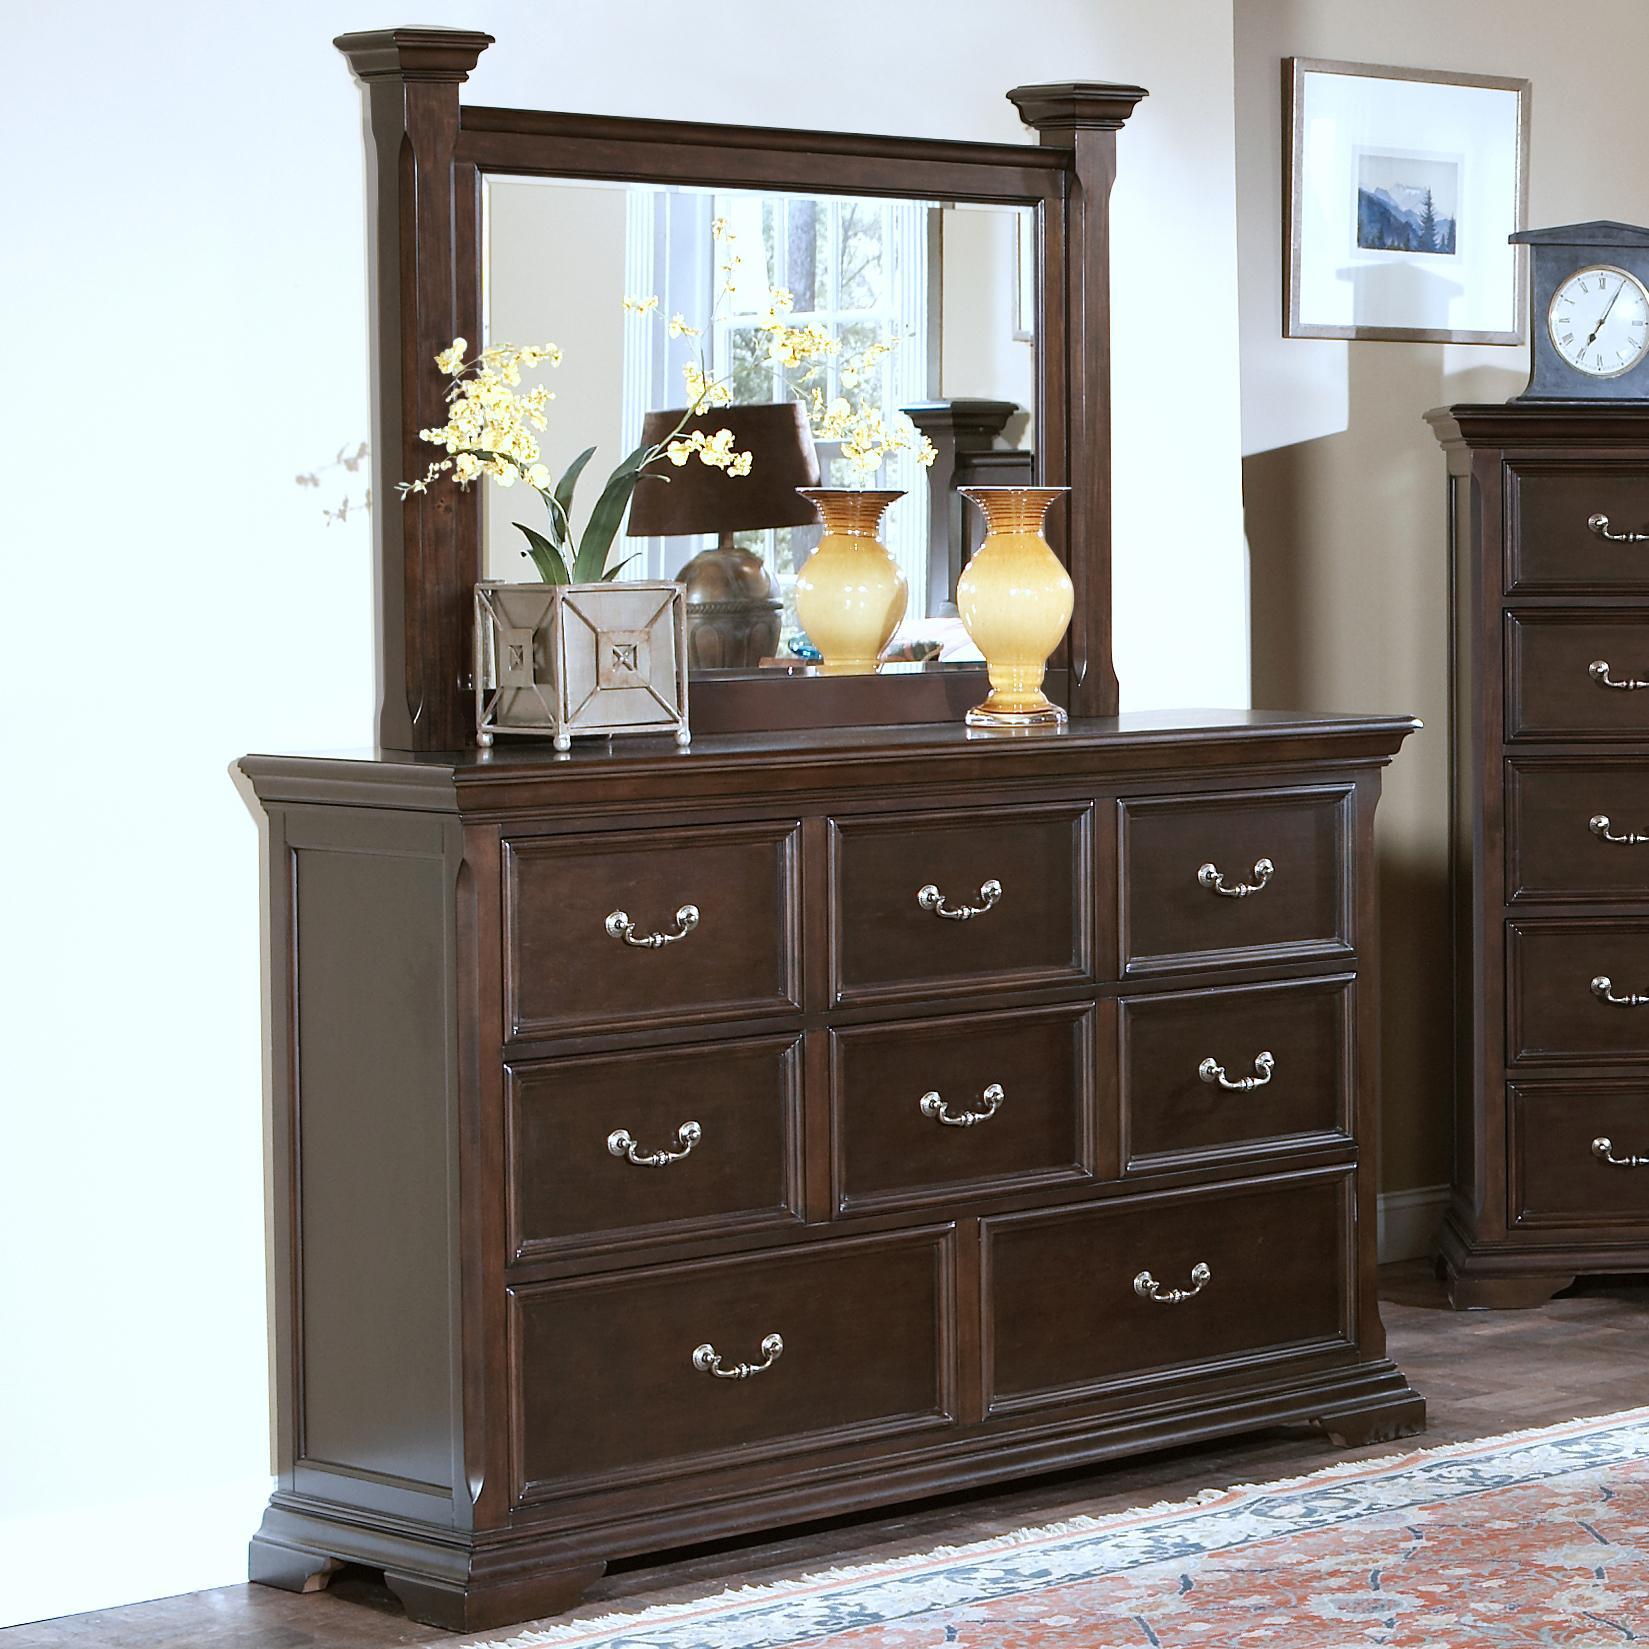 New Classic Timber City Dresser and Mirror Set - Item Number: 00-007-050+060